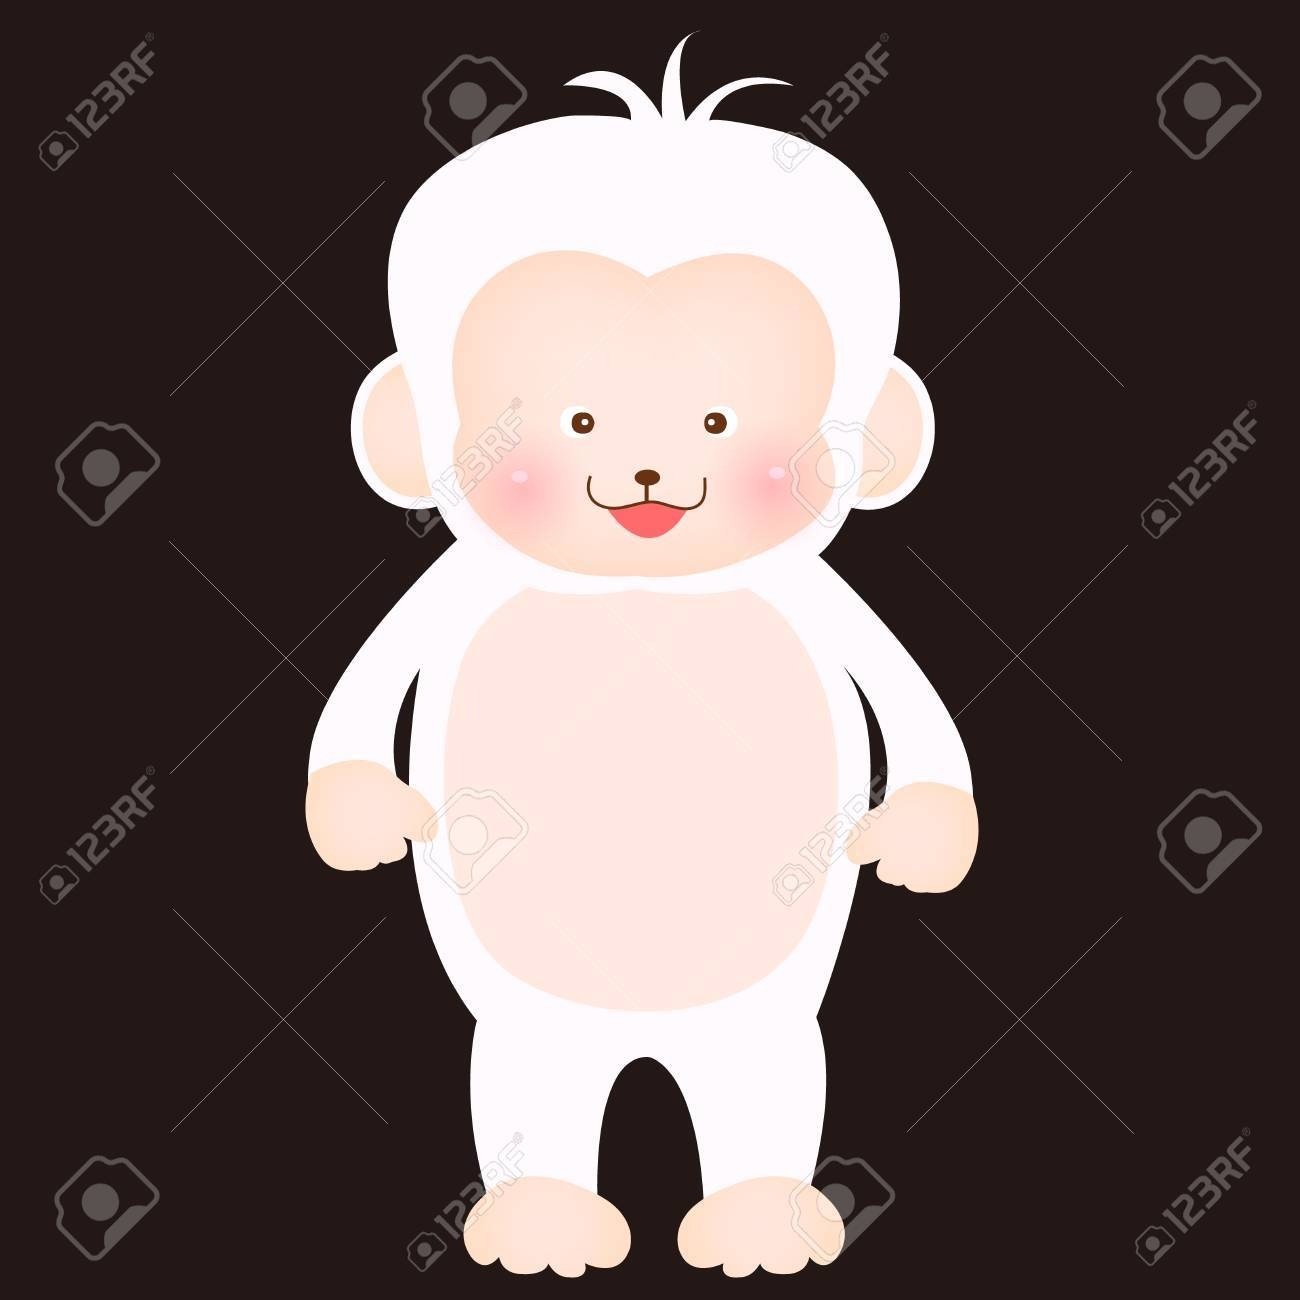 Cute Monkey Greeting Cards Royalty Free Cliparts Vectors And Stock